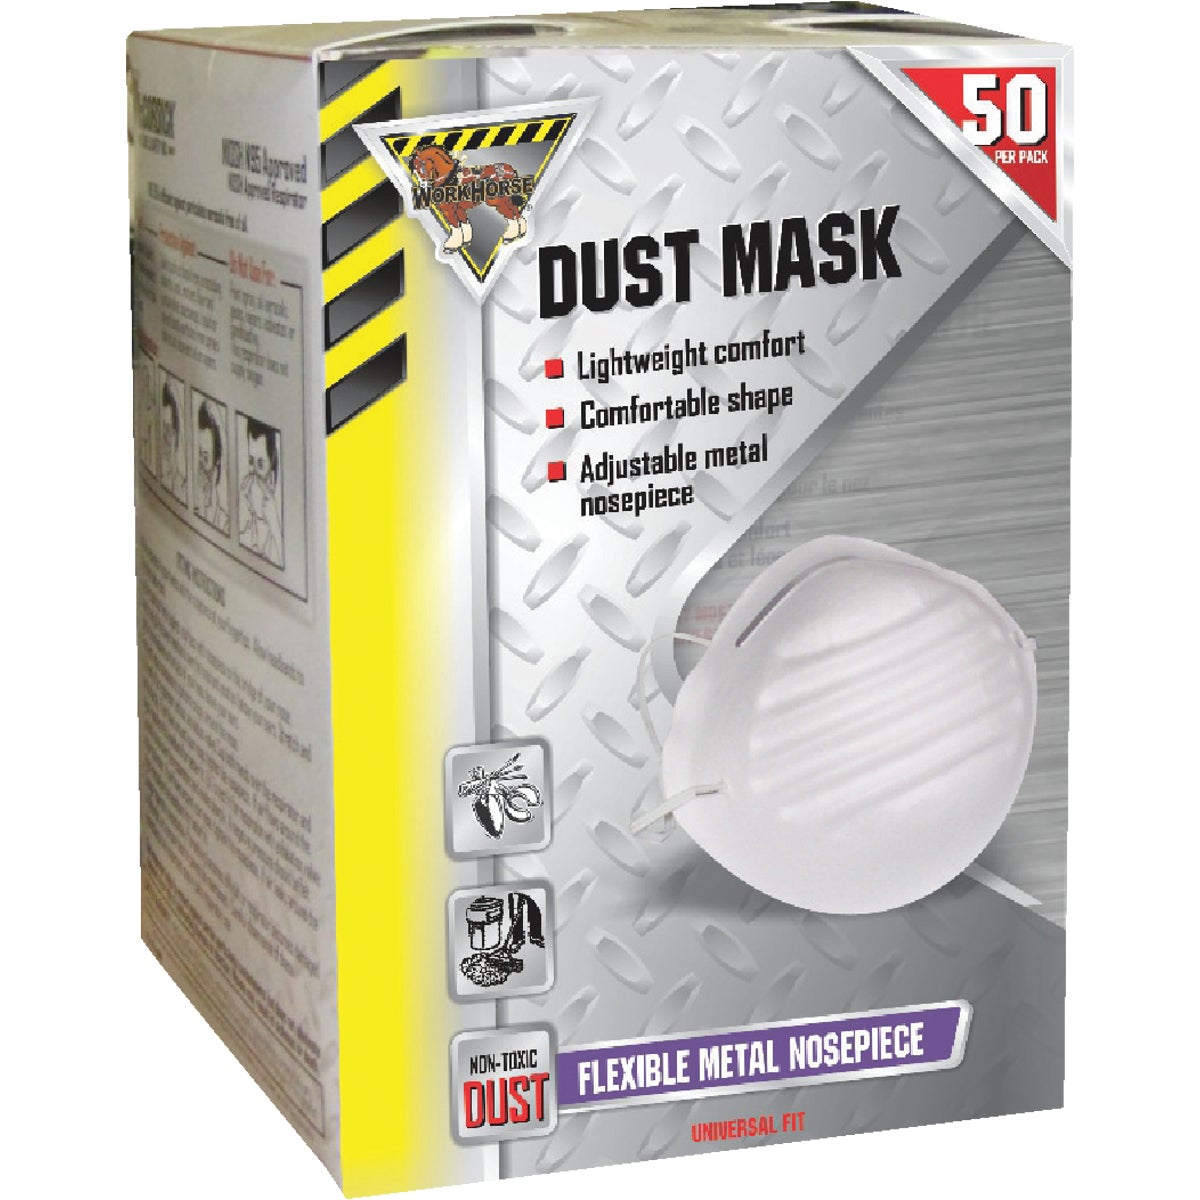 50PK DUST MASK - 770116 by Mccordick Glove